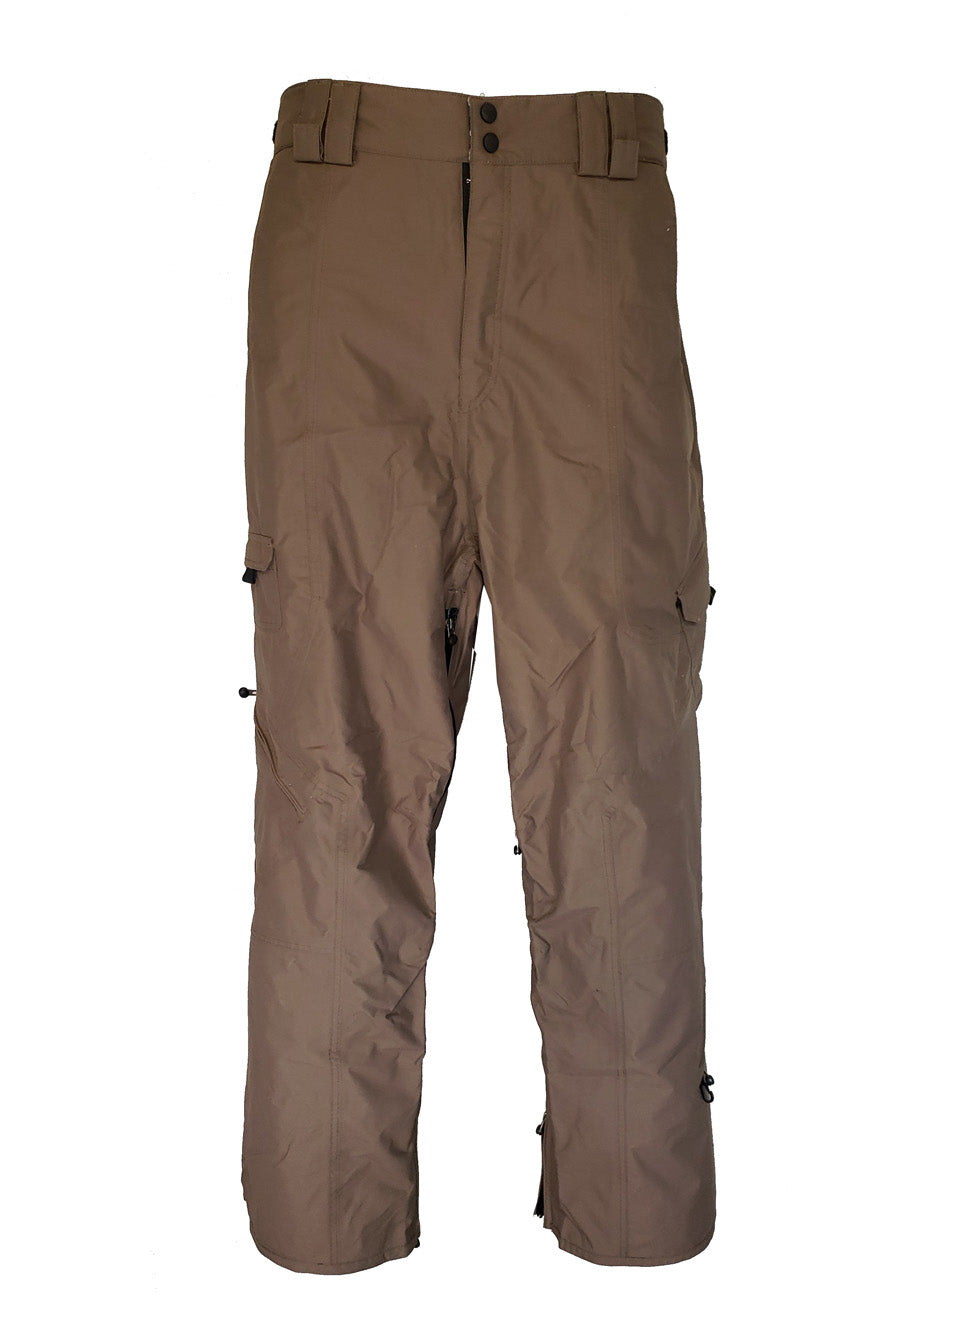 MISSION SIX BREAKER 10K WATERPROOF SNOWBOARDING PANTS BROWN MEN'S XL